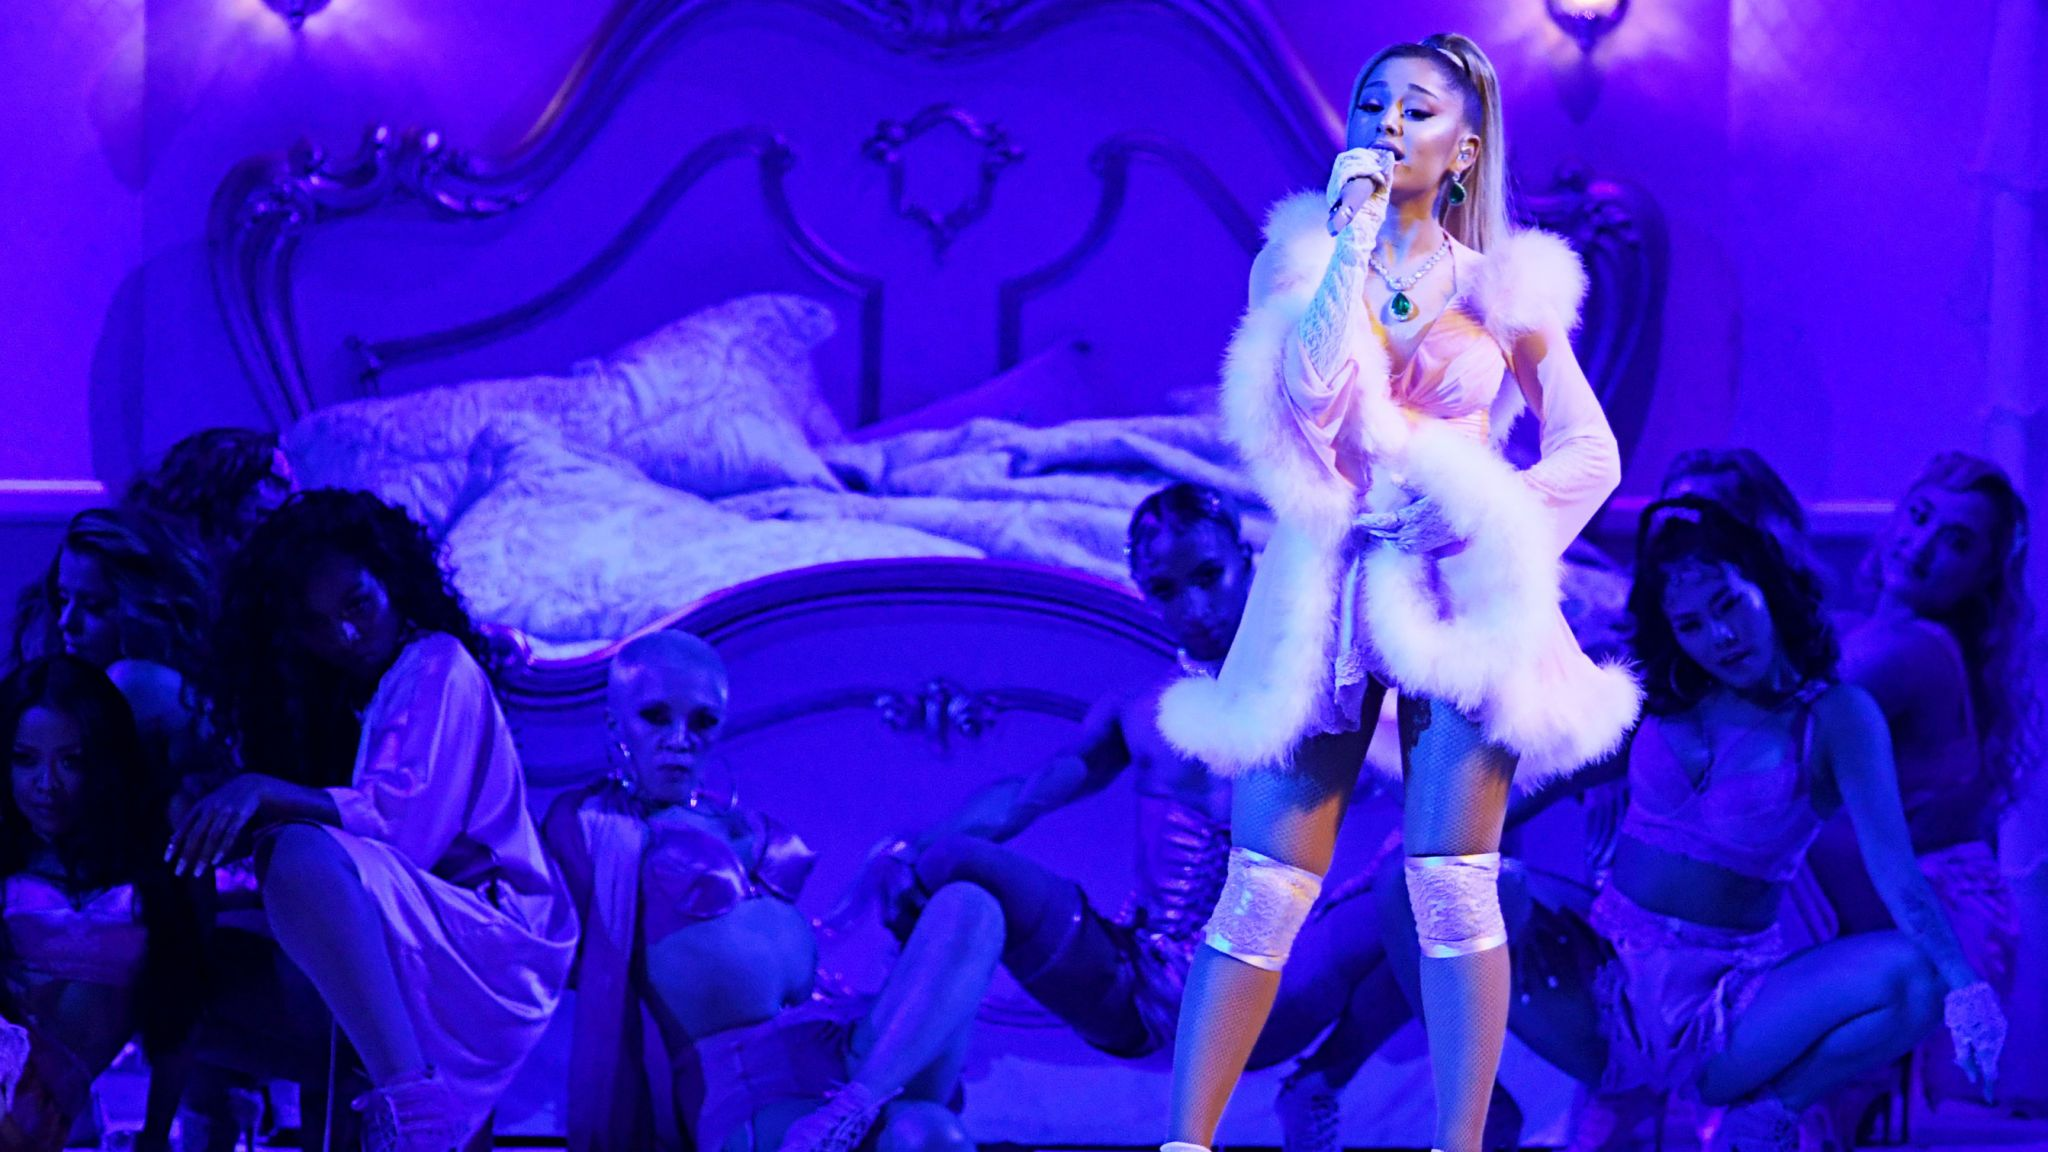 Ariana Grande on stage at the Grammys